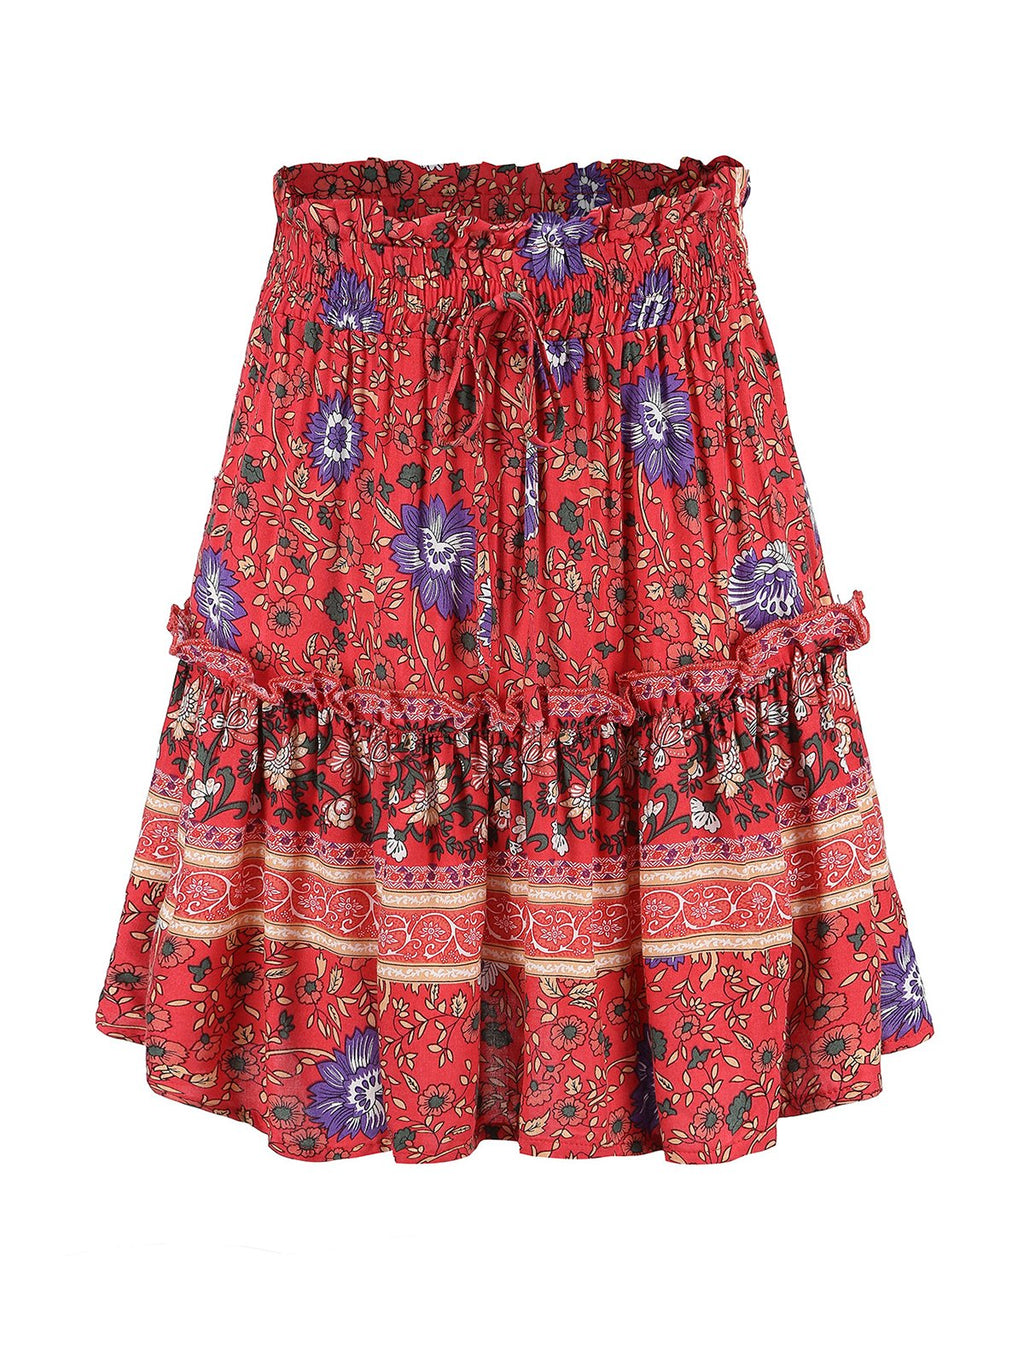 Adjustable Waist Loose Bohemia Style Print High Rise Skirts